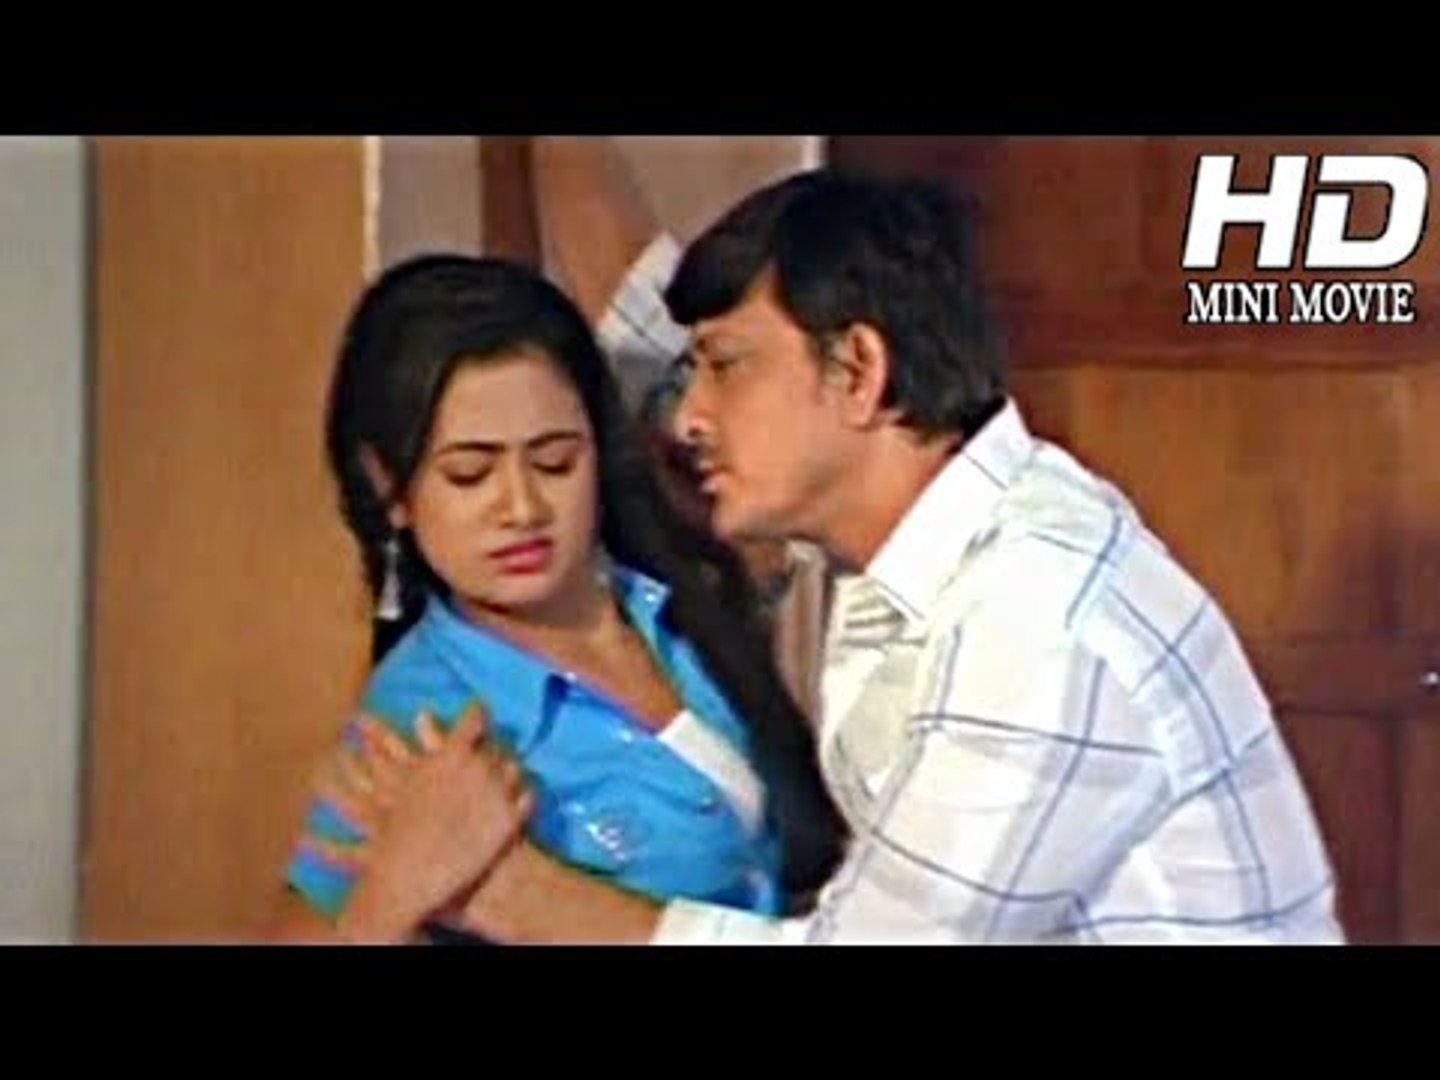 Odia Movie Full || De Maa Shakti  De || Nusrat Bharucha Rakesh Bapat New Movie || Oriya Movie Full